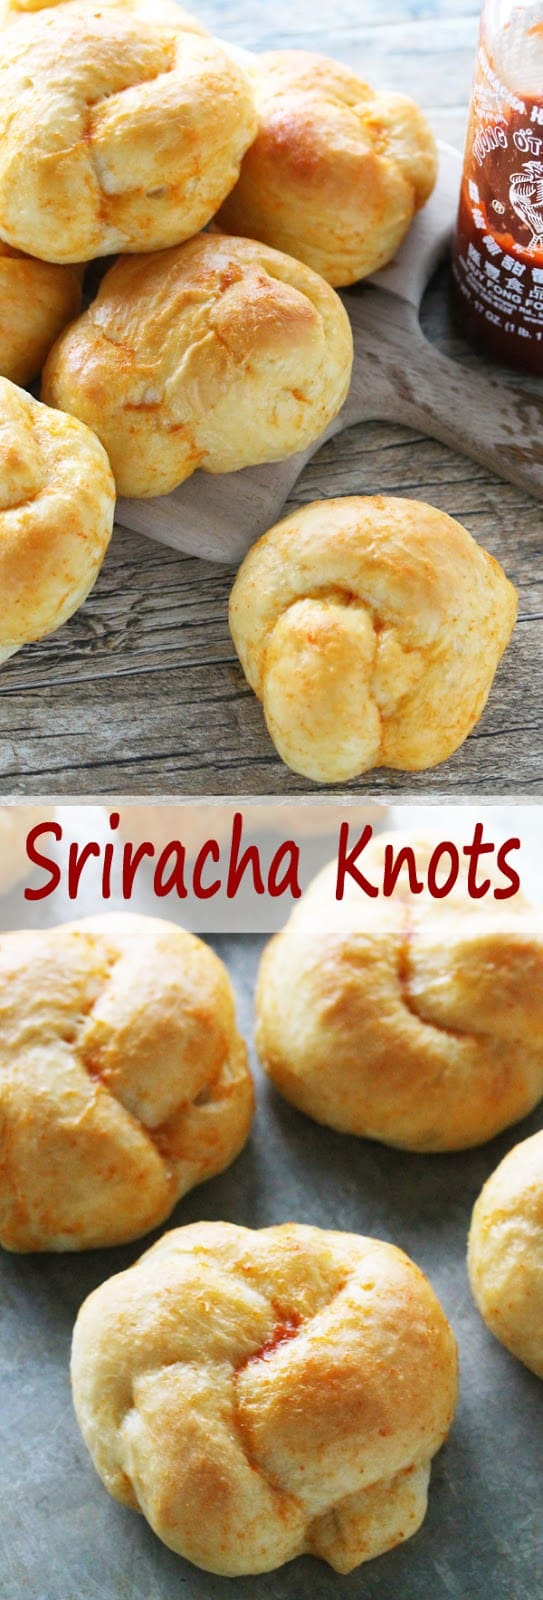 Sriracha Knots from the Stay At Home Chef. Spicy sriracha butter glazed rolls that brings a little heat and a whole lot of flavor!